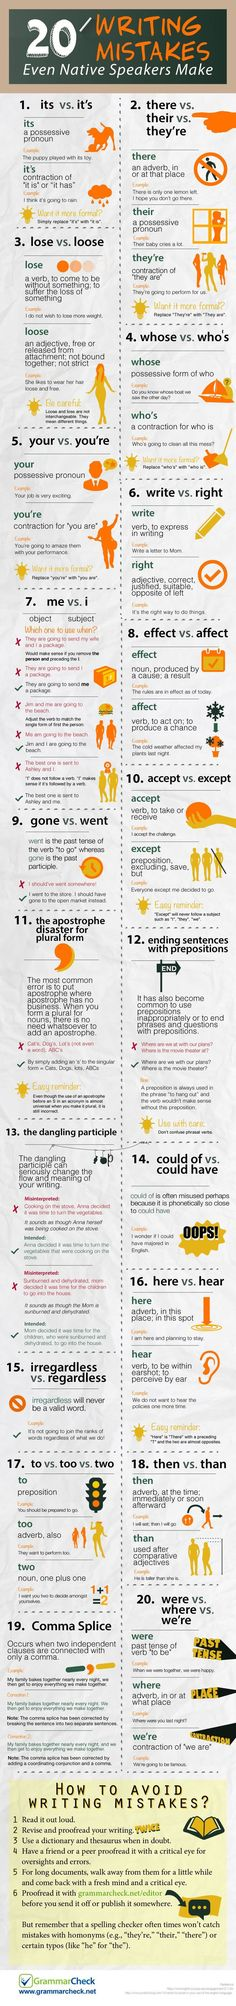 grammar mistakes made by non native english Most instructors encounter non-native speakers of english or esl students (students with english as their second language) in their classes at one point or another although native speakers of english also have problems with writing, non-native speakers' problems can be quite different, and the approach taken by the instructor needs to be.